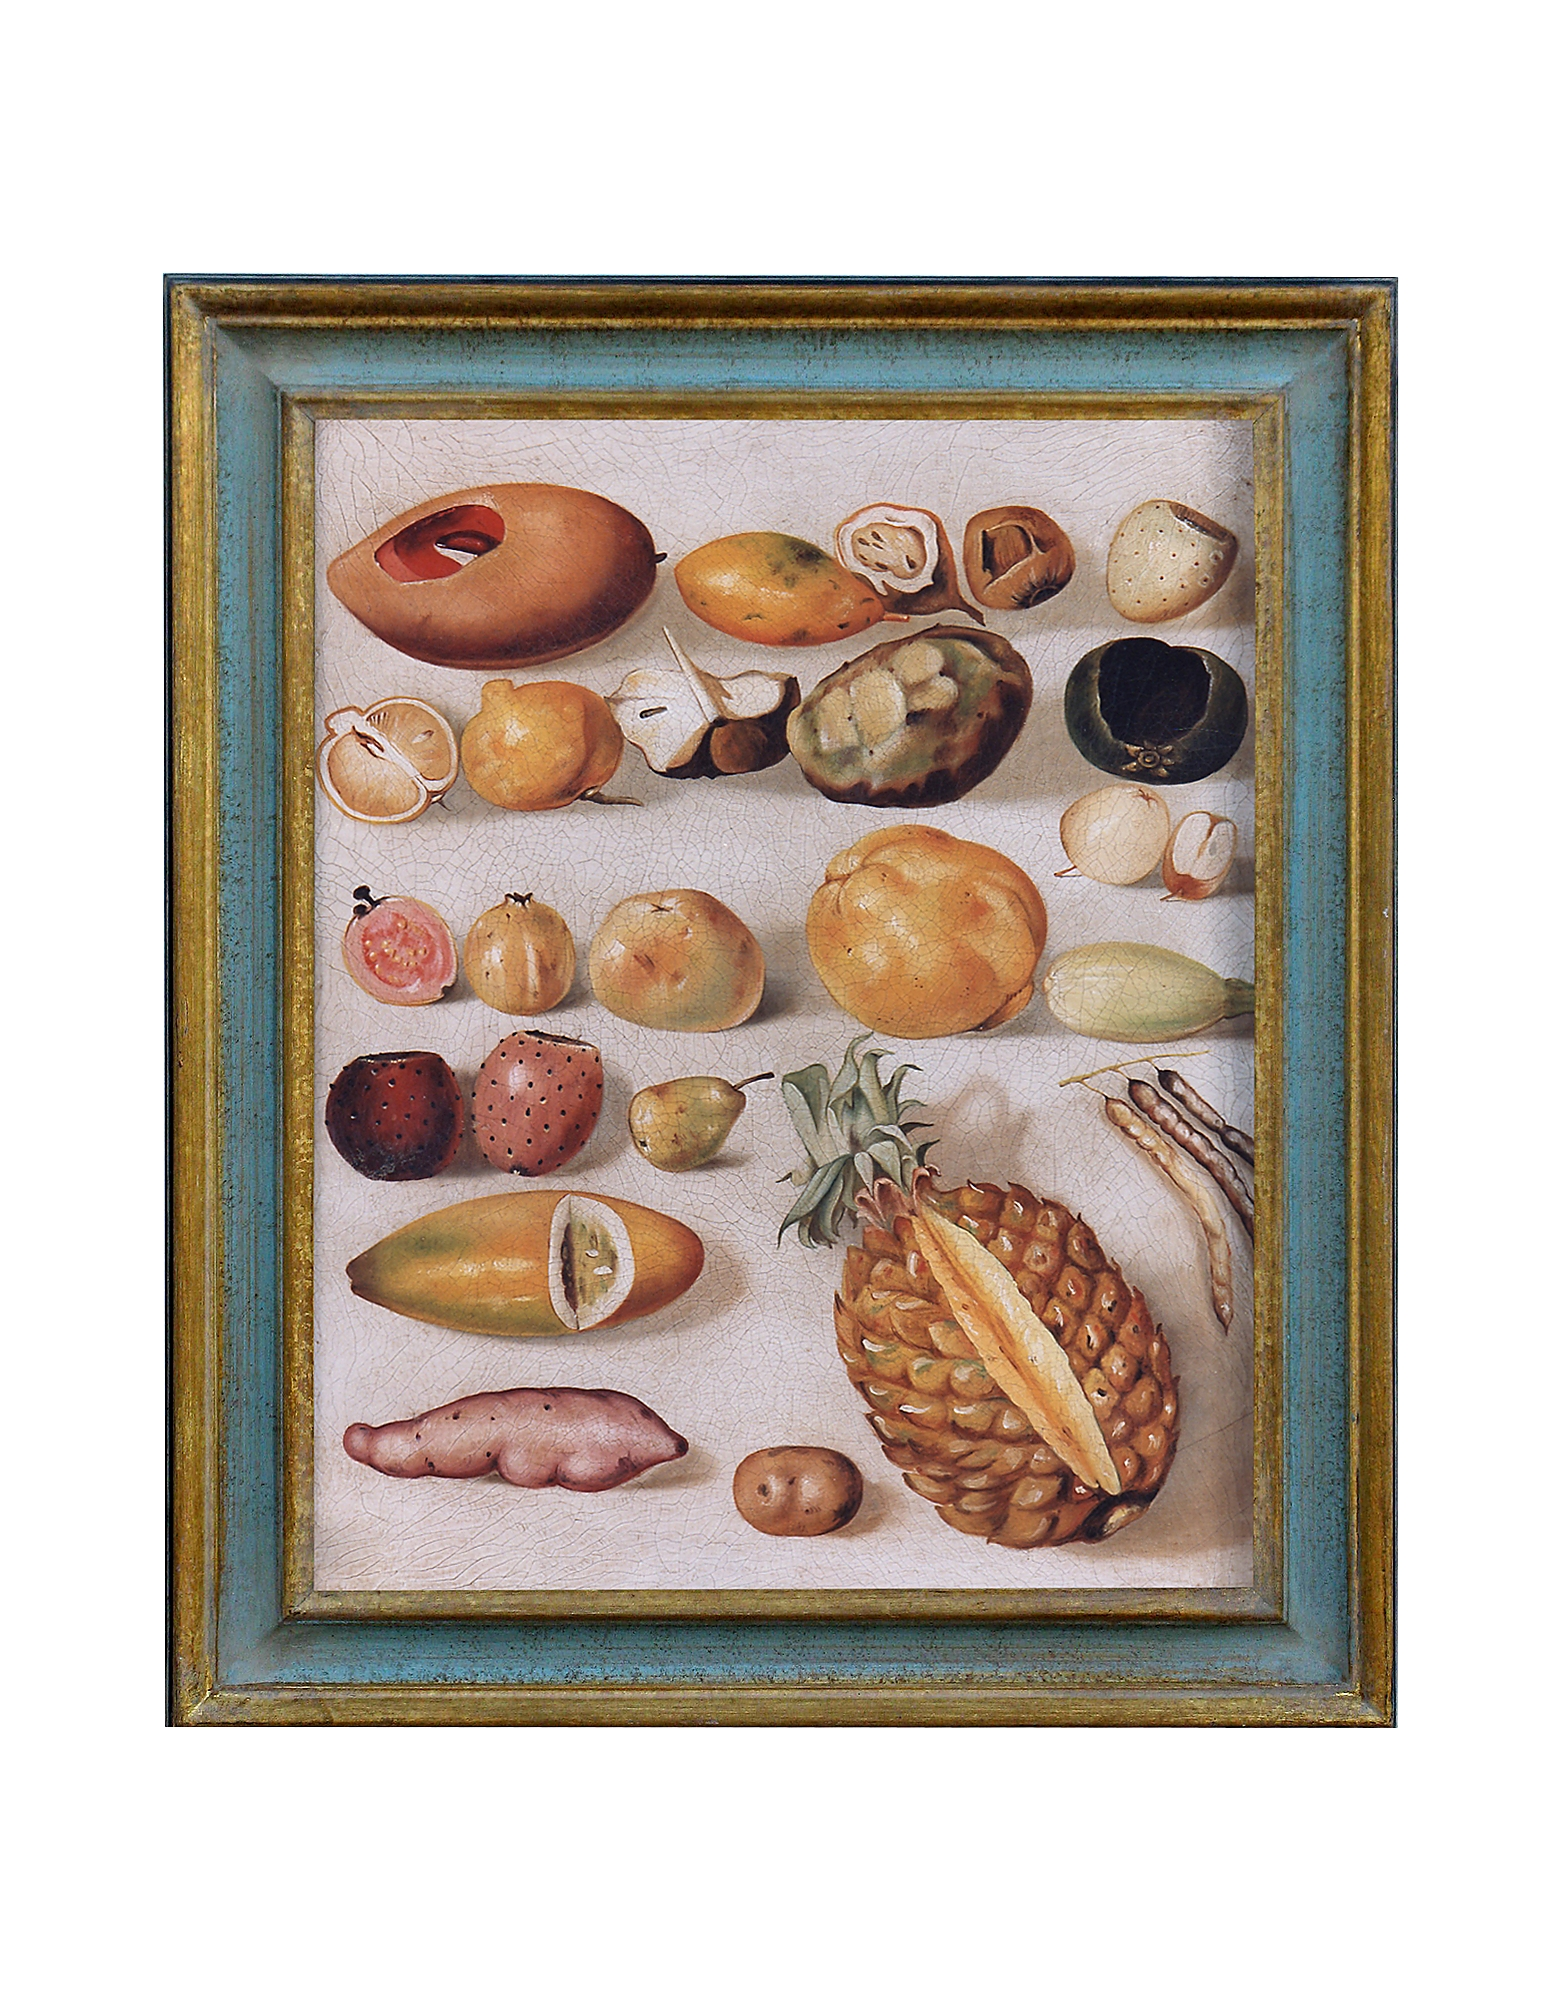 Bianchi Arte Paintings, Oil on Canvas Still Life Painting